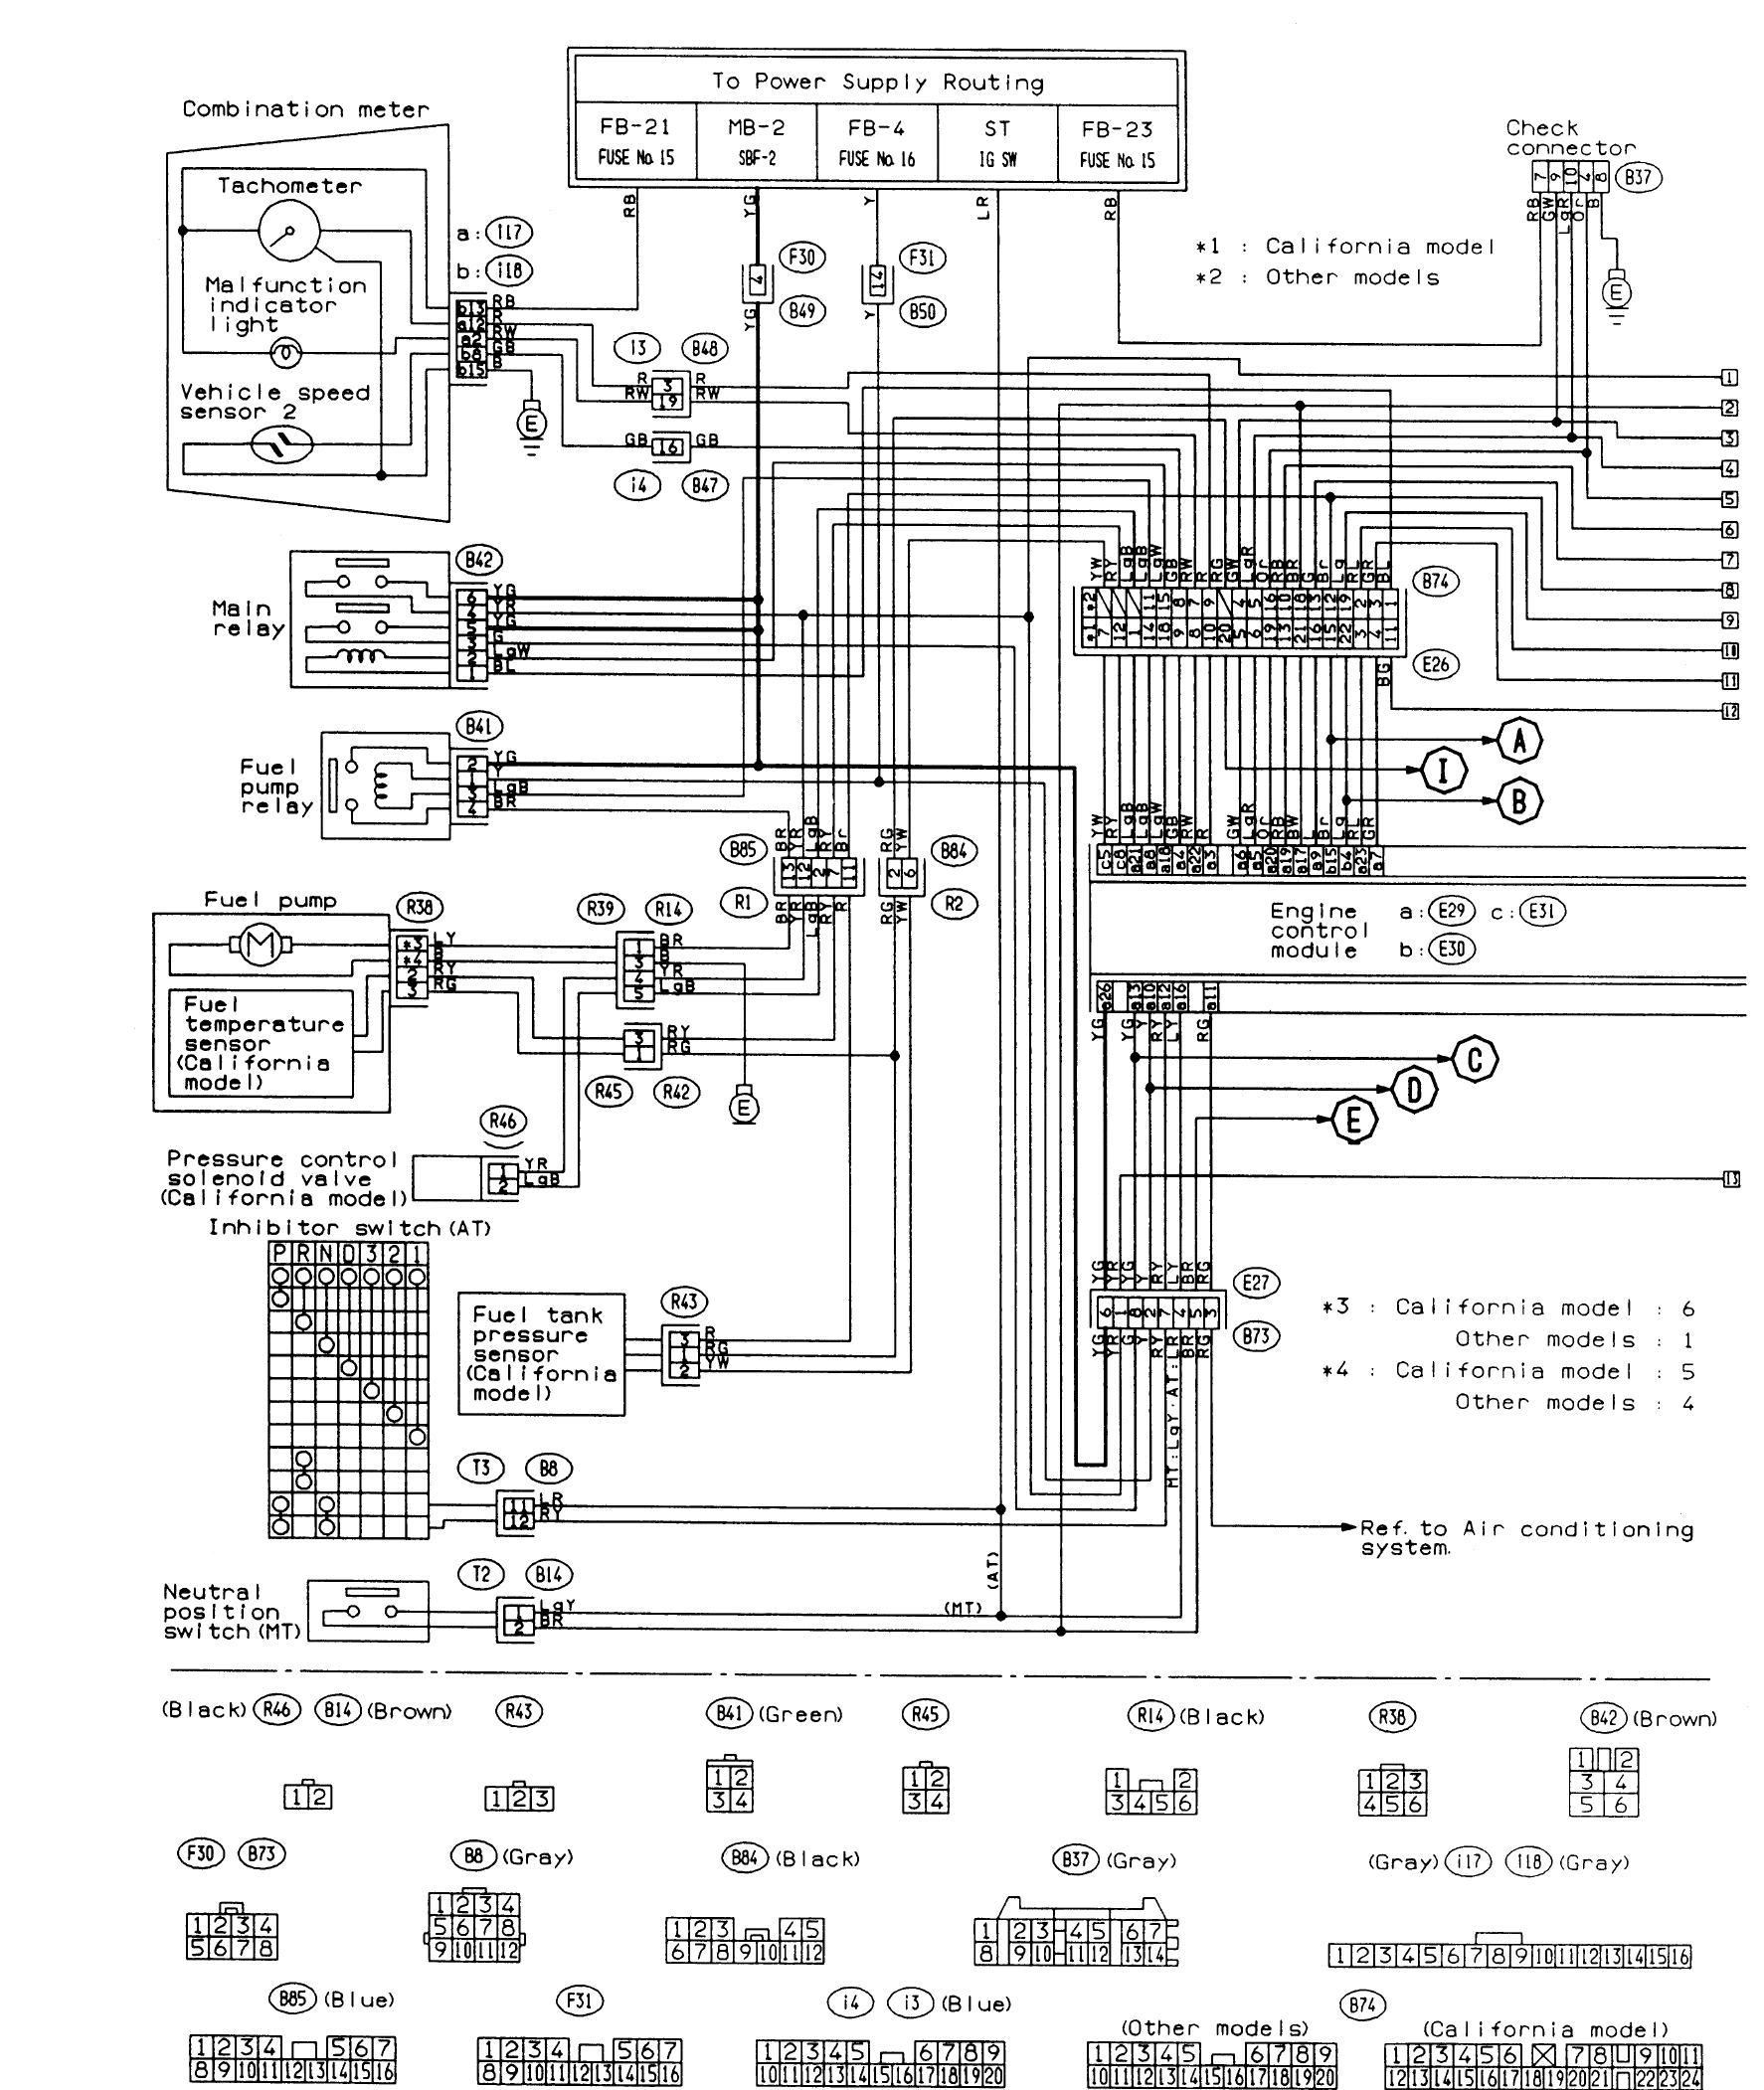 subaru ecu wiring diagram FUSlrCX 2005 subaru impreza wiring diagram 2006 explorer stereo wiring wiring diagram for 2004 subaru forester at alyssarenee.co